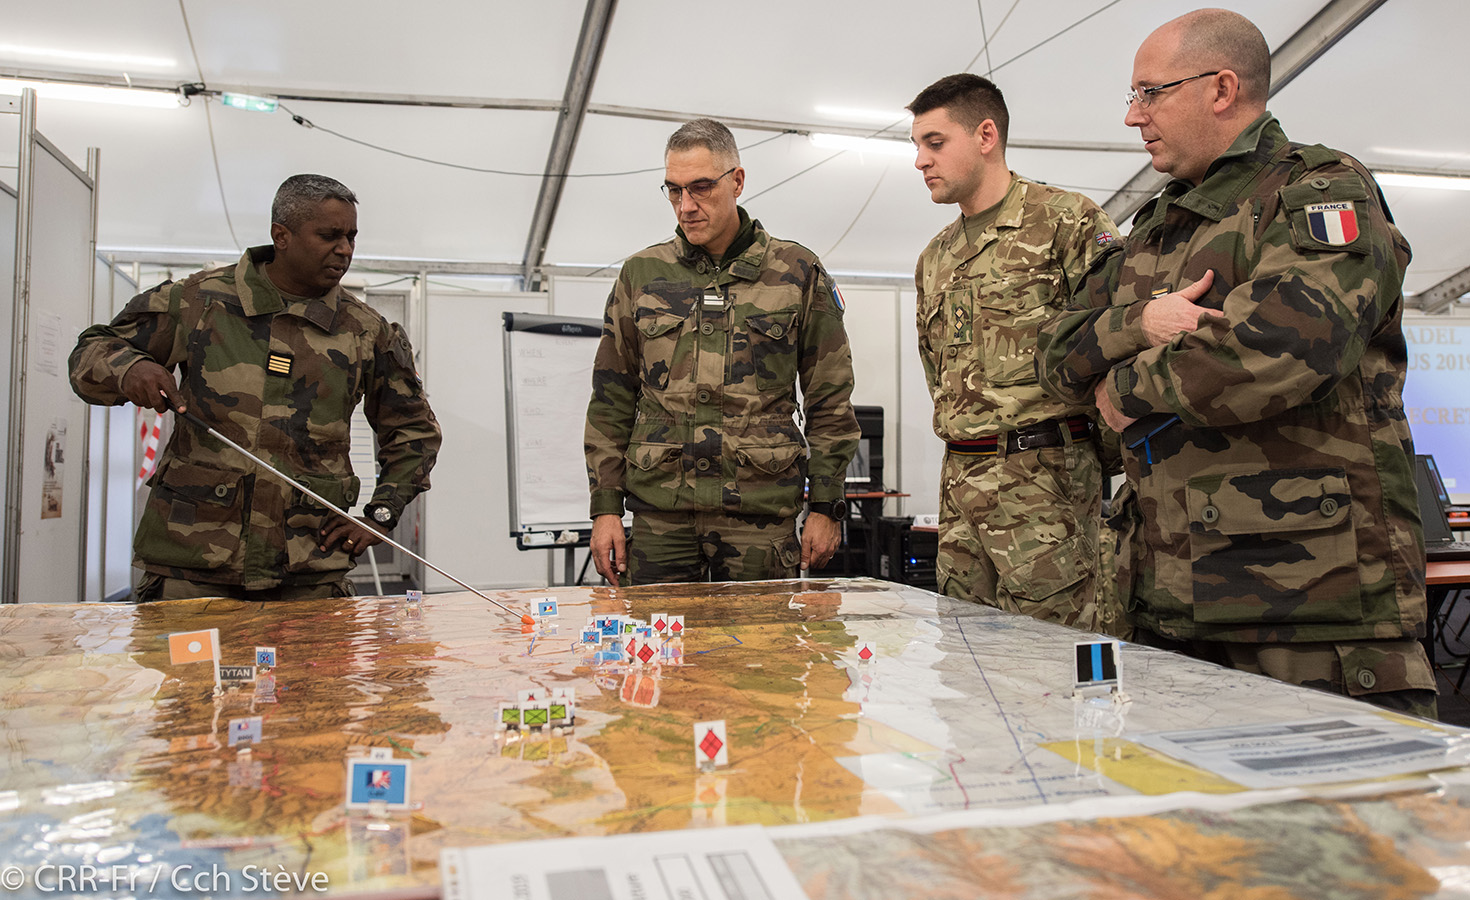 Rapid Reaction Corps-France's Exercise Citadel Bonus 2019 at JFTC